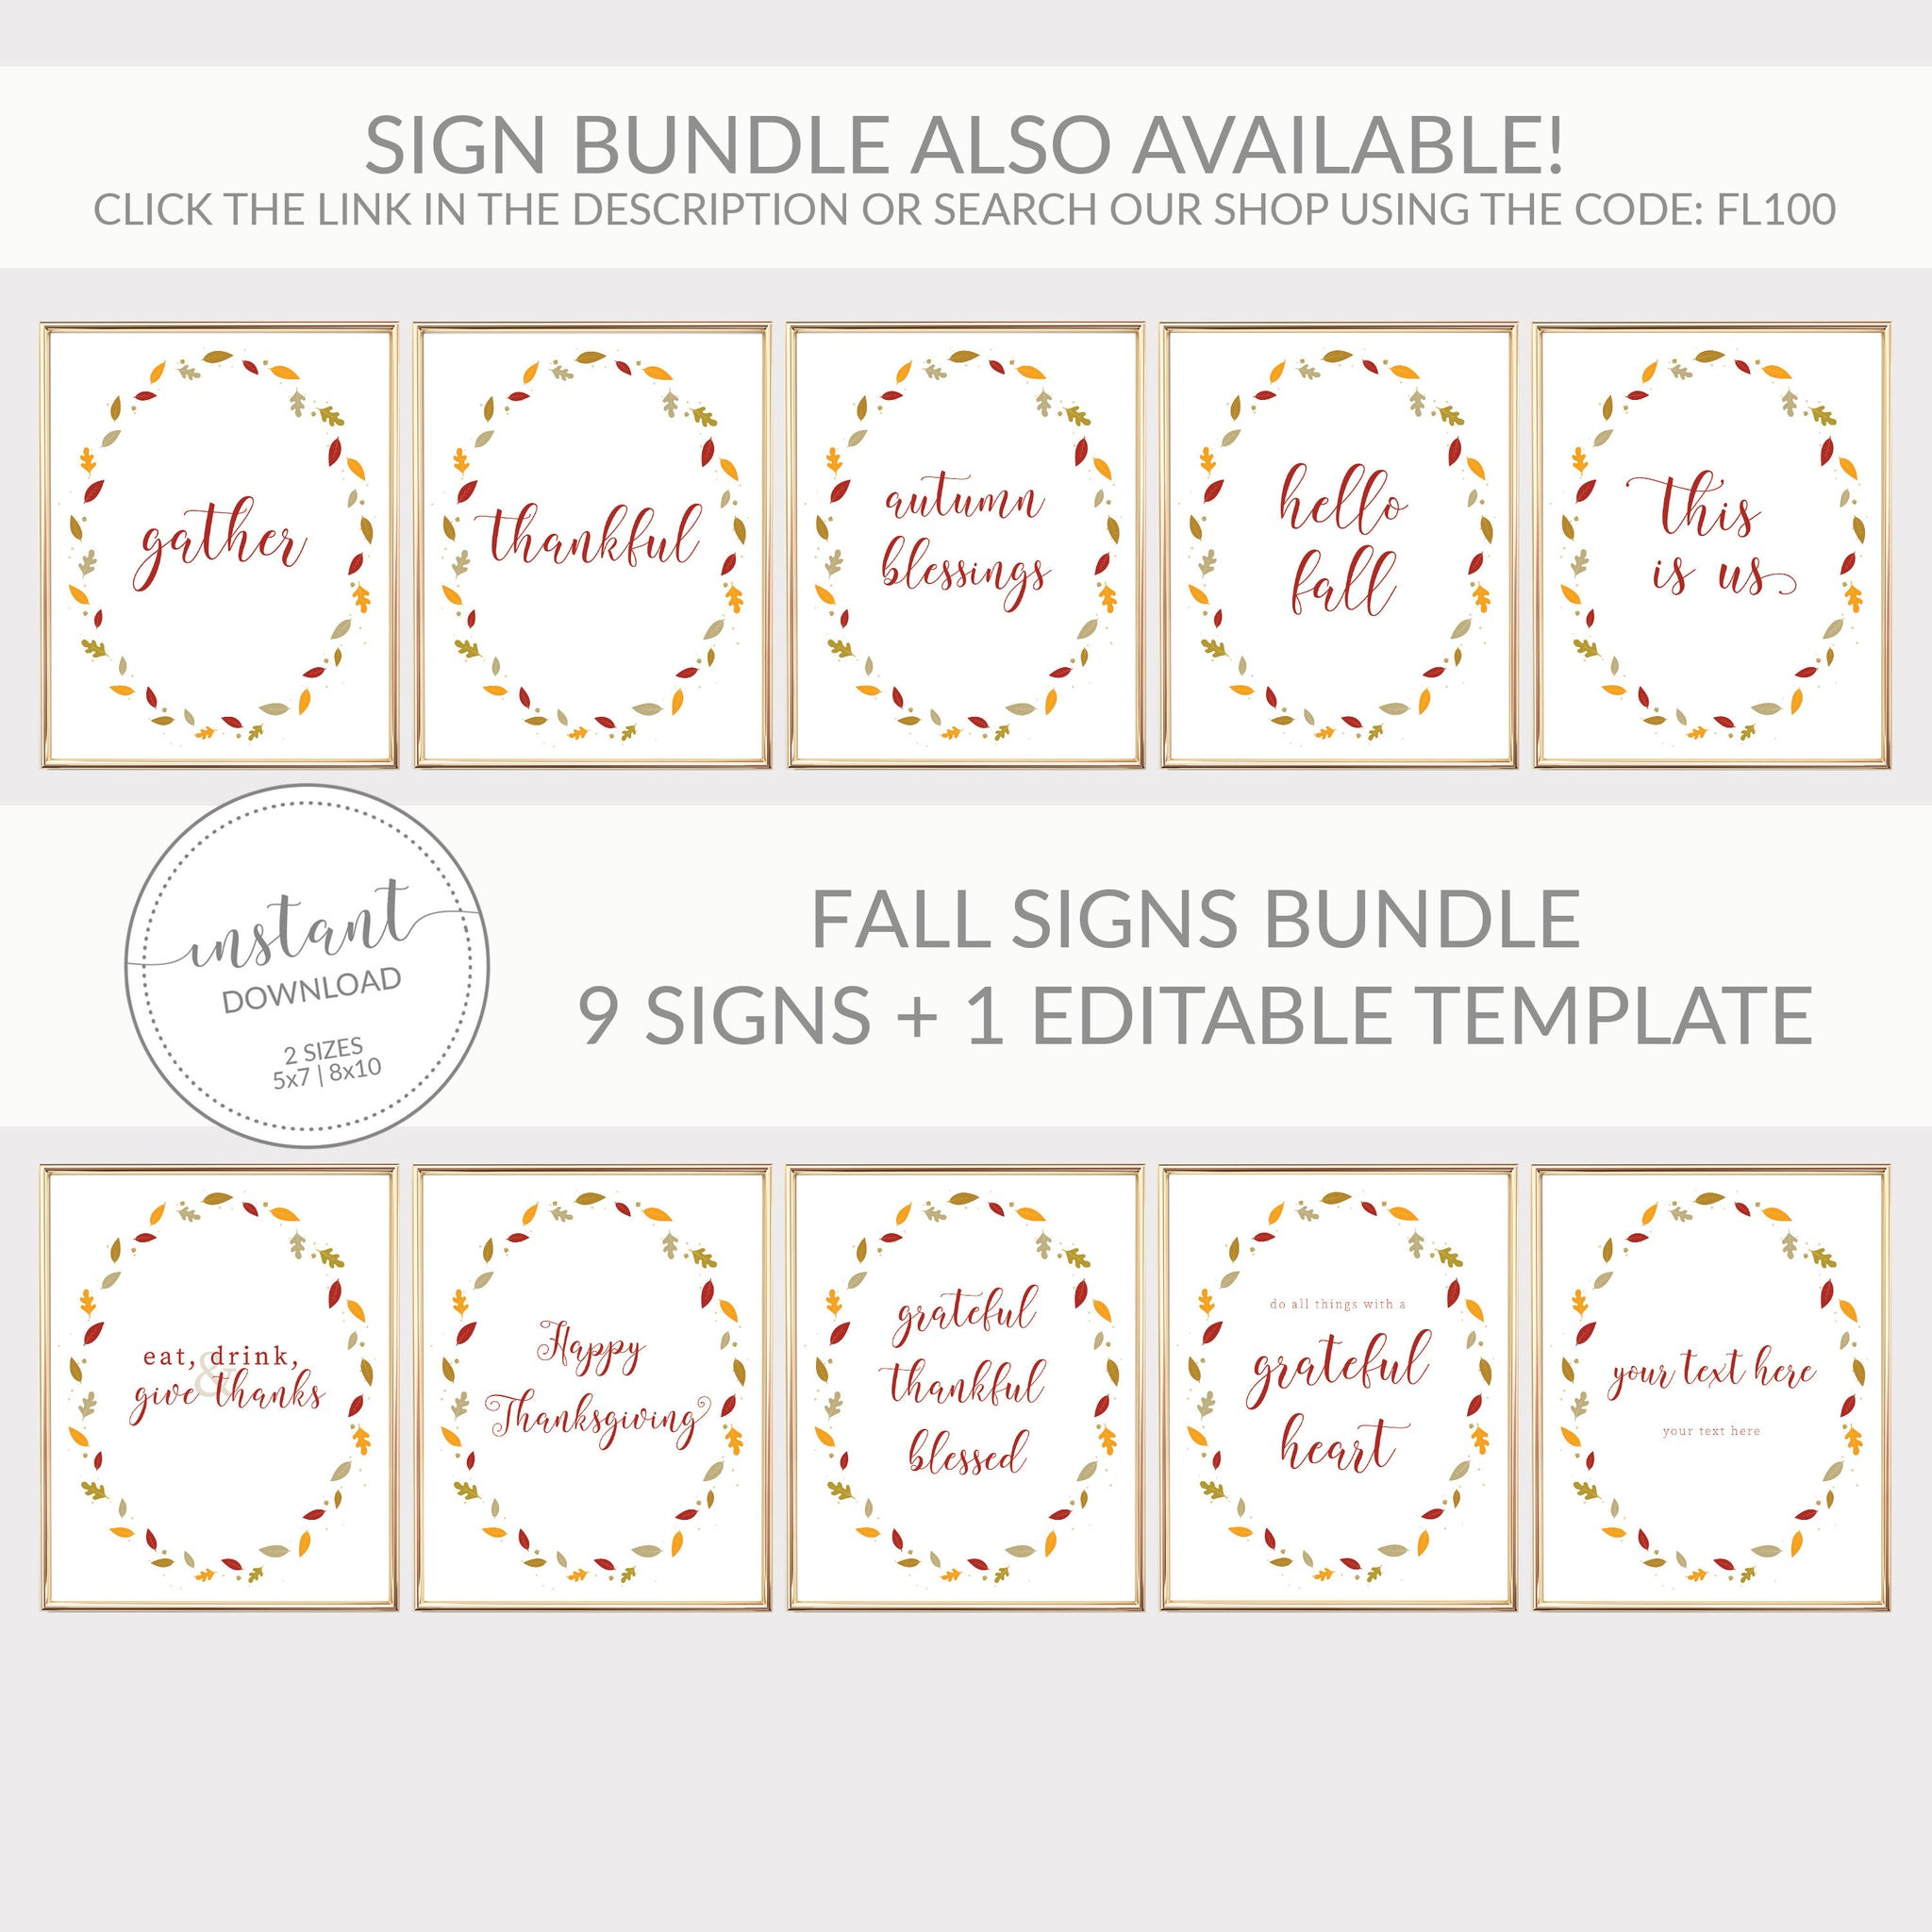 Friendsgiving Menu Template, Friendsgiving Decor, Friendsgiving Decorations, Fall Dinner Menu Printable, Editable DIGITAL DOWNLOAD - FL100